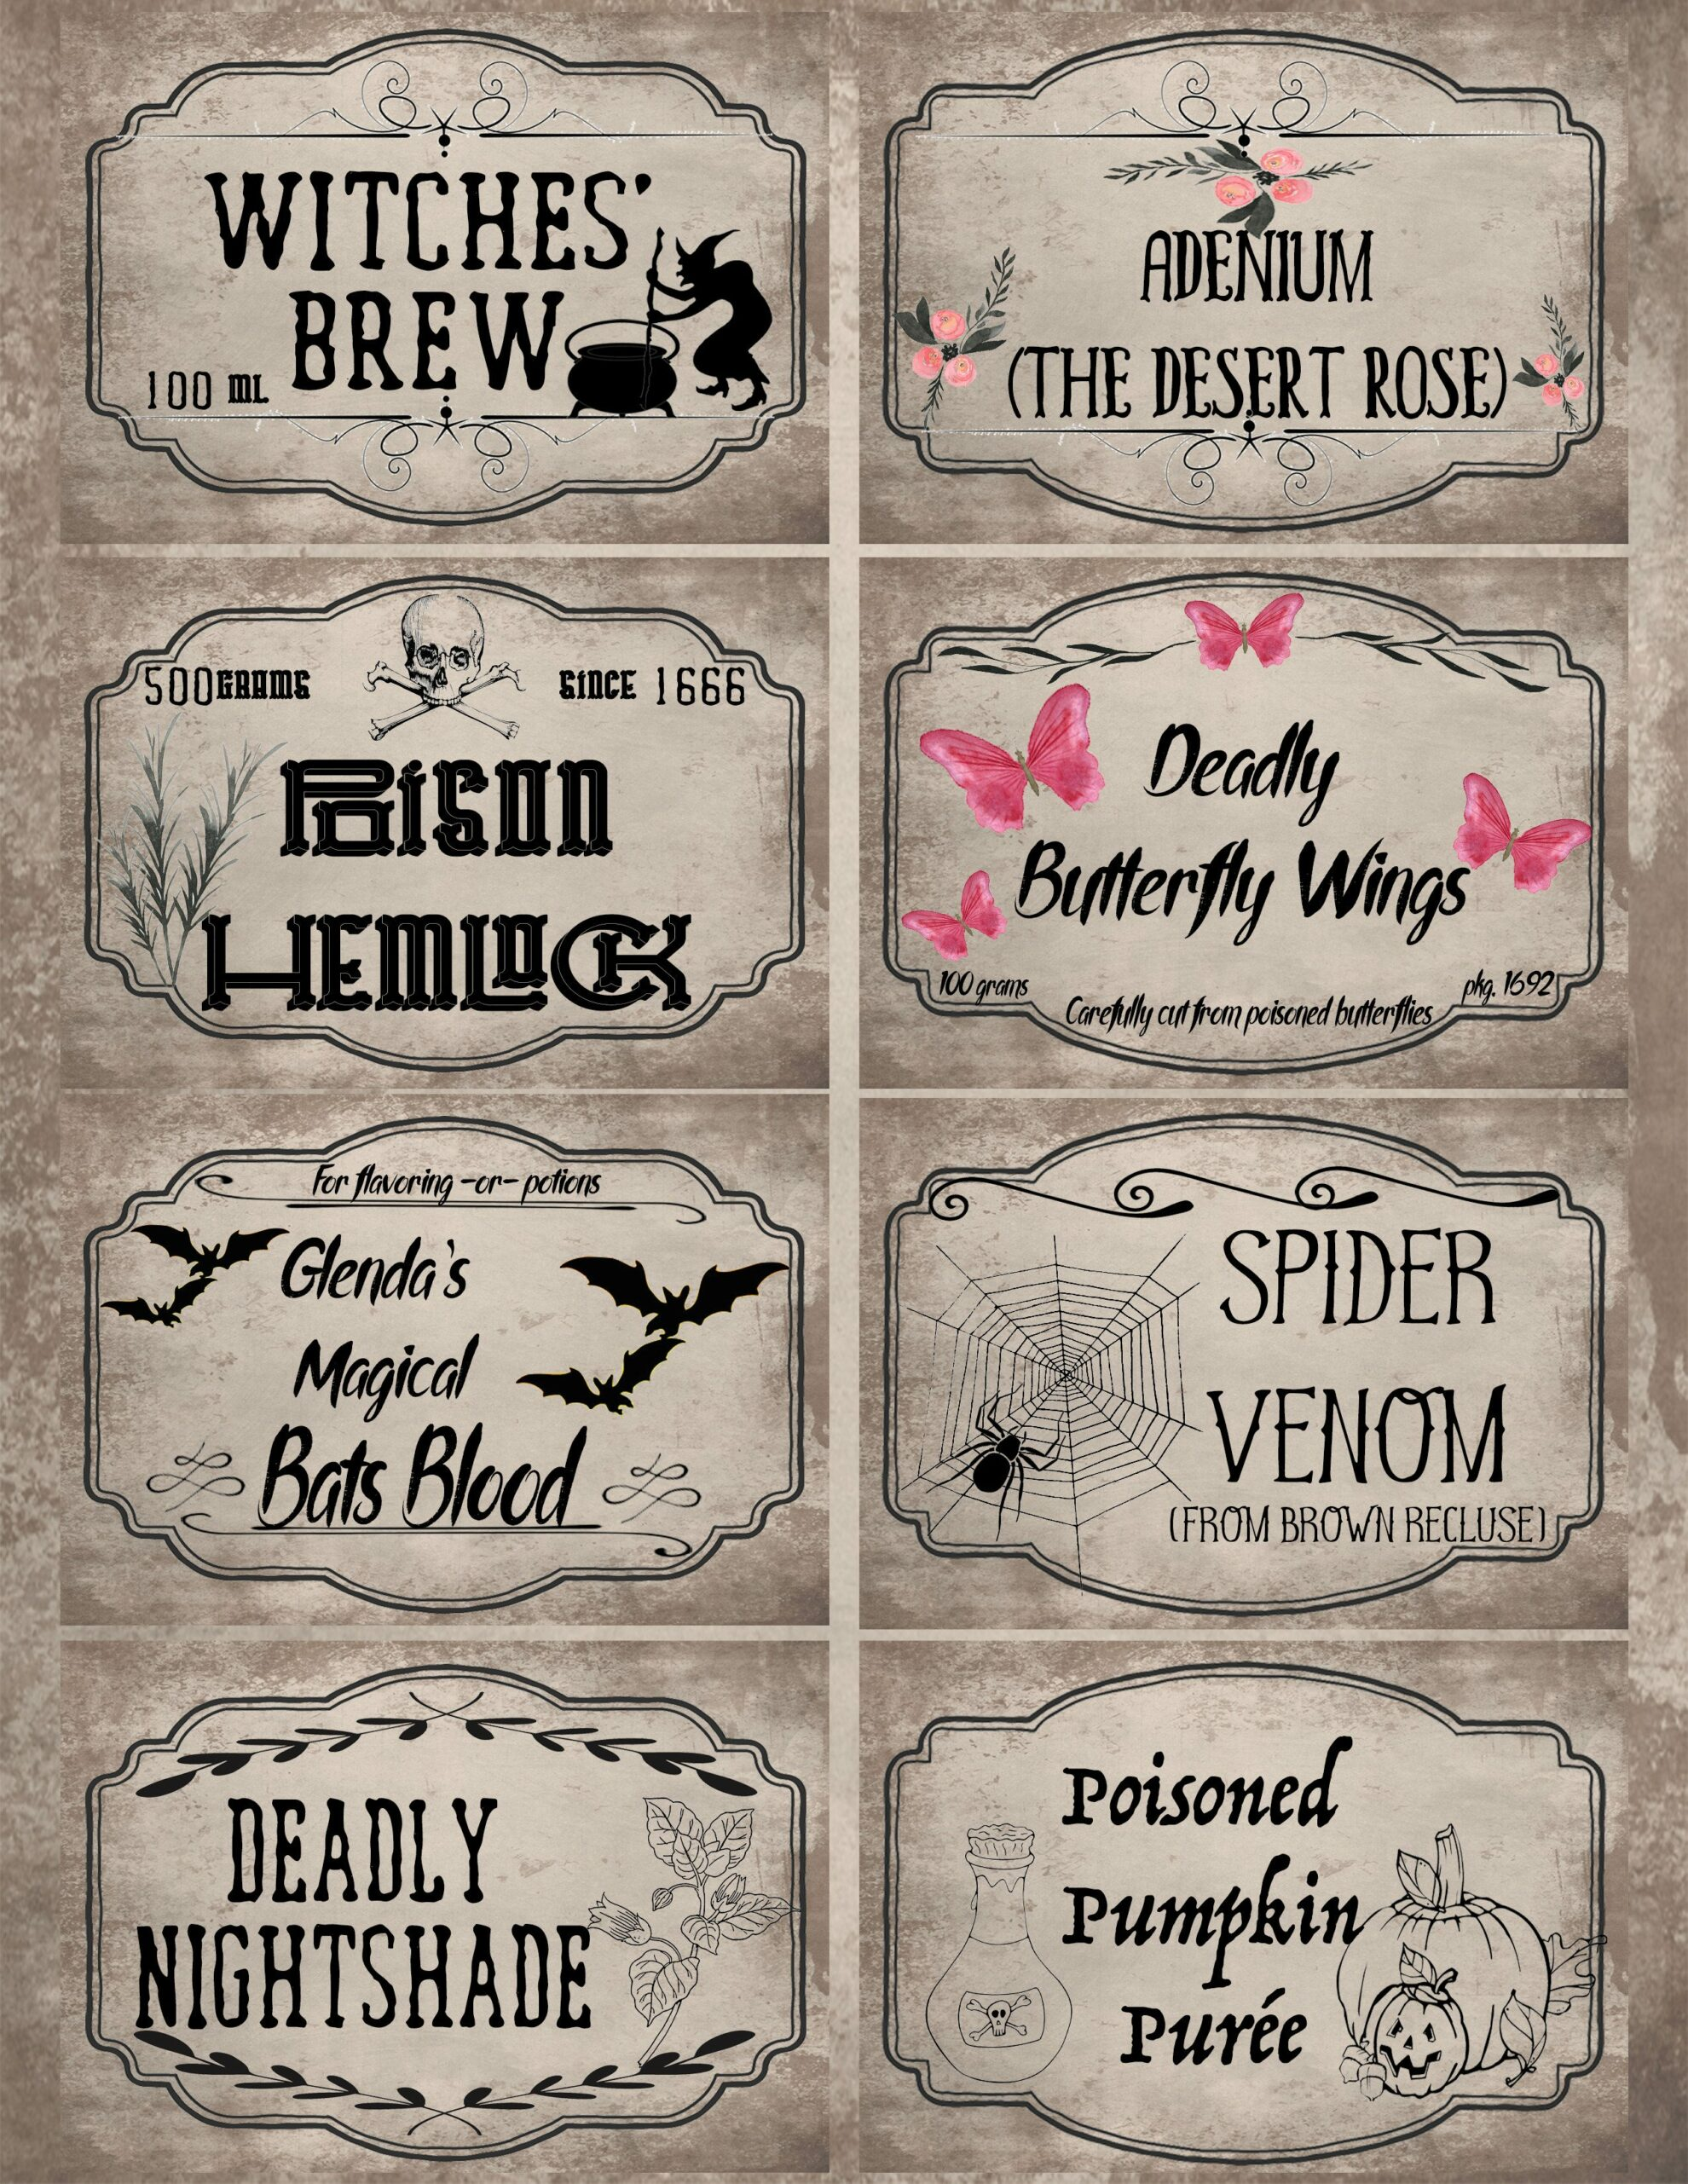 image relating to Free Printable Vintage Apothecary Labels referred to as Totally free Printable Halloween Apothecary Labels: 16 Programs in addition